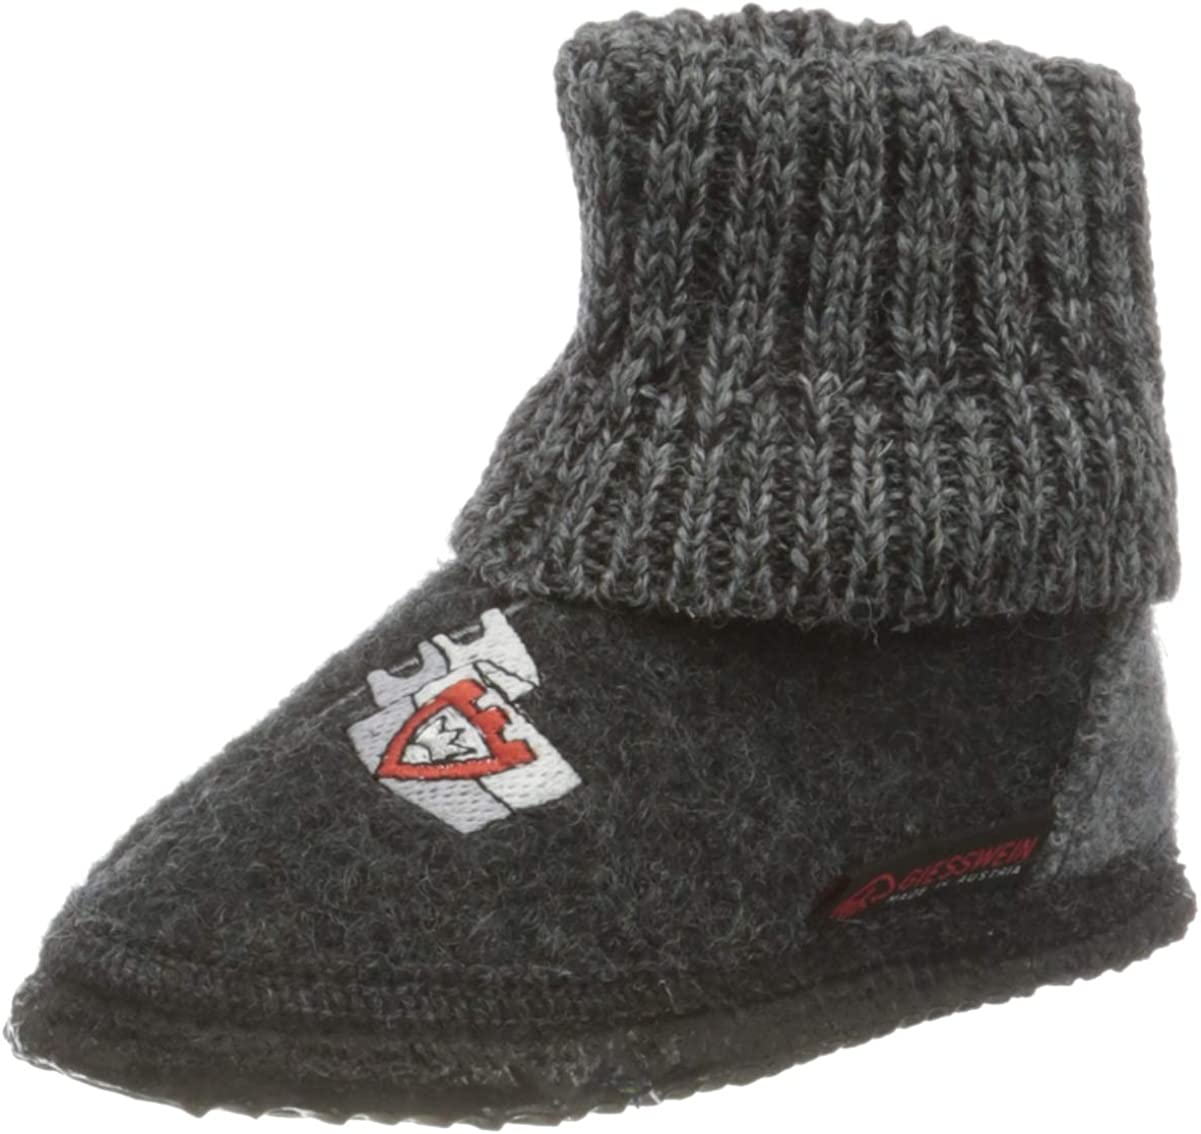 Giesswein Boy's Max 64% Max 57% OFF OFF Slippers High